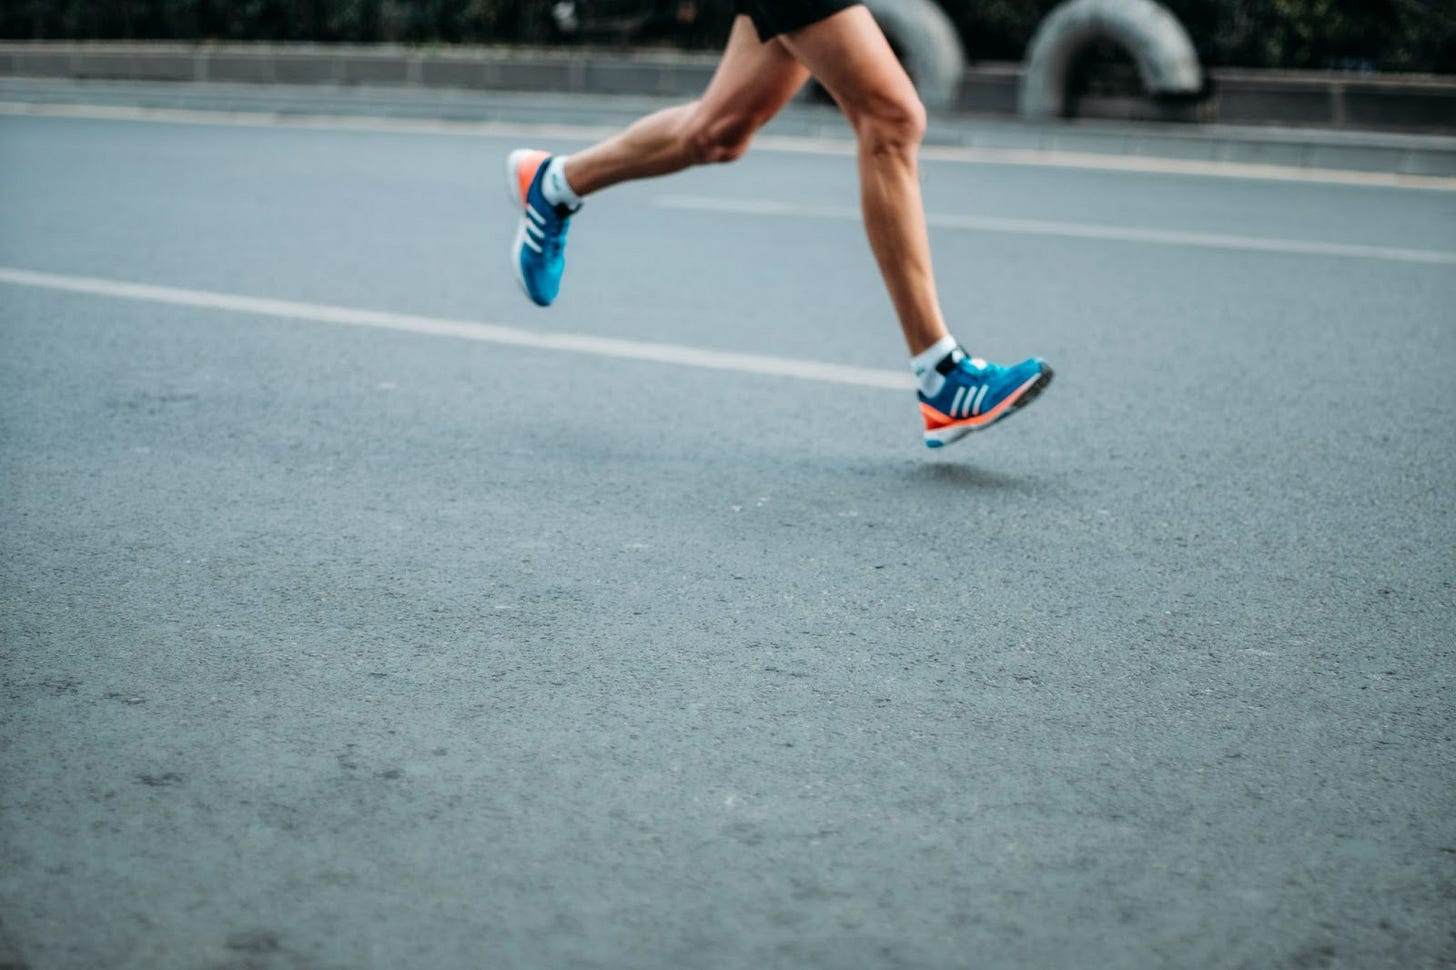 A man in running shoes speeds across the tack.